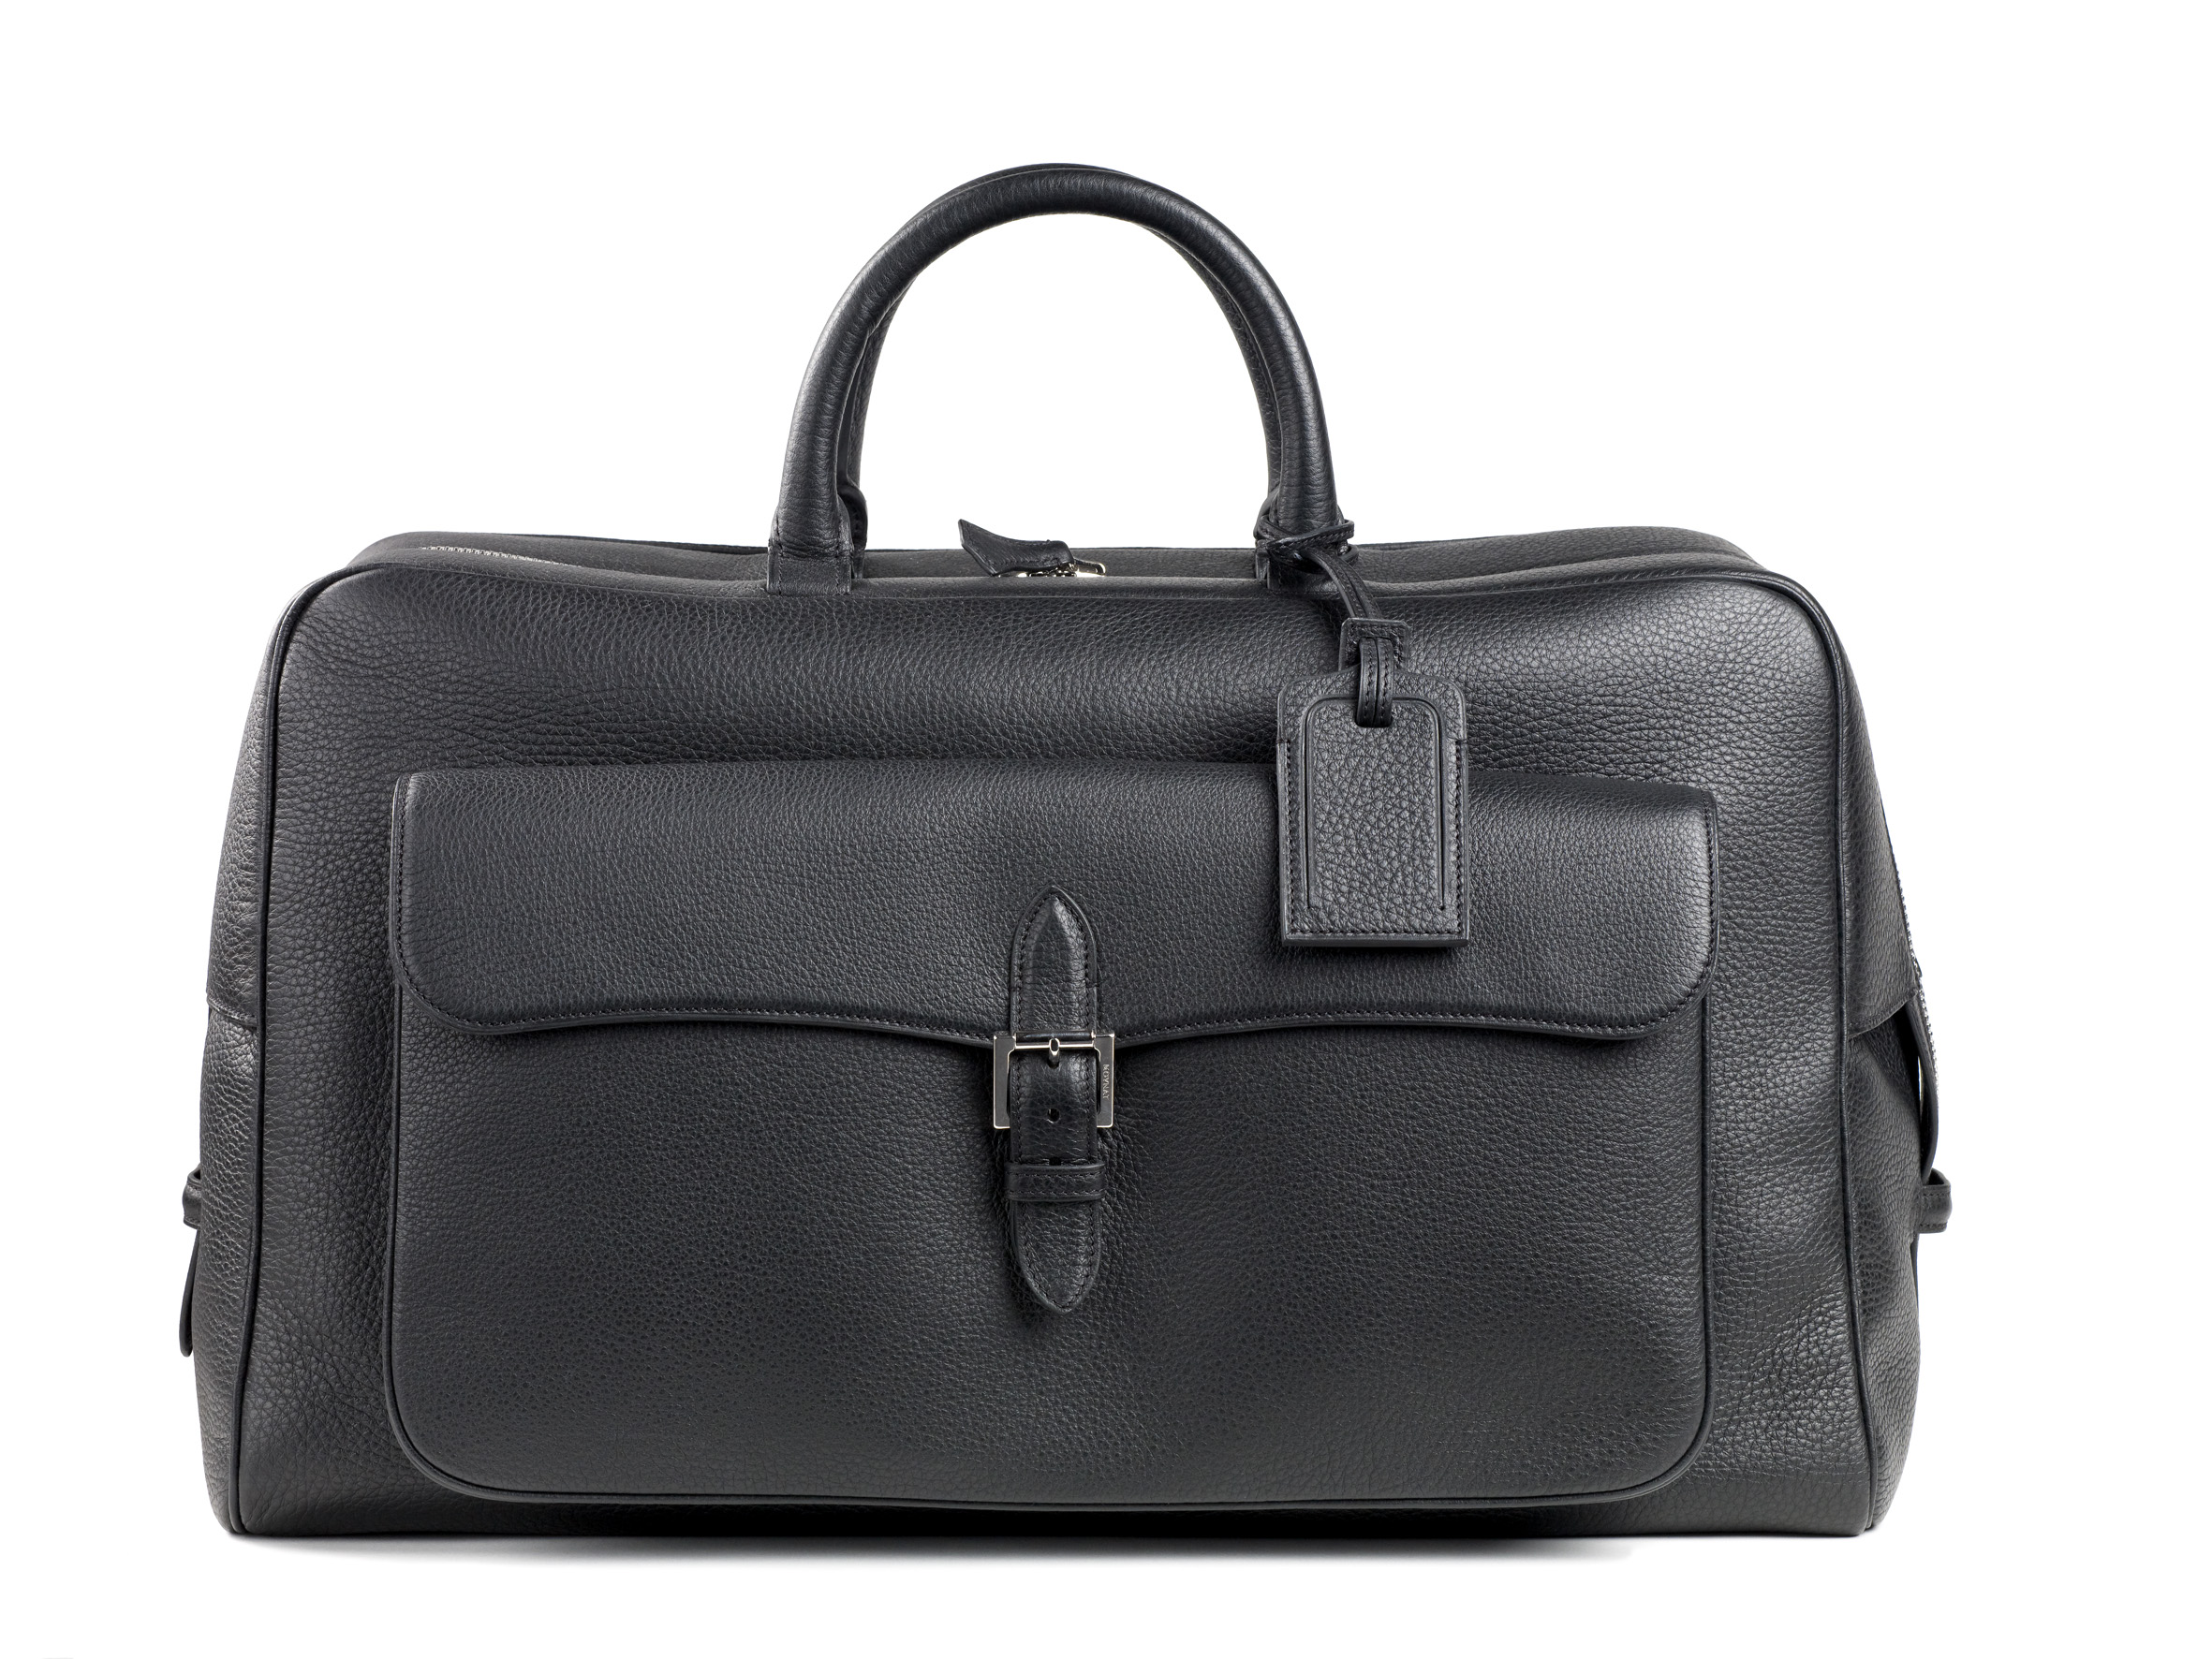 PG Selection: HOLDALL bag by the Maison Moynat (Paris)